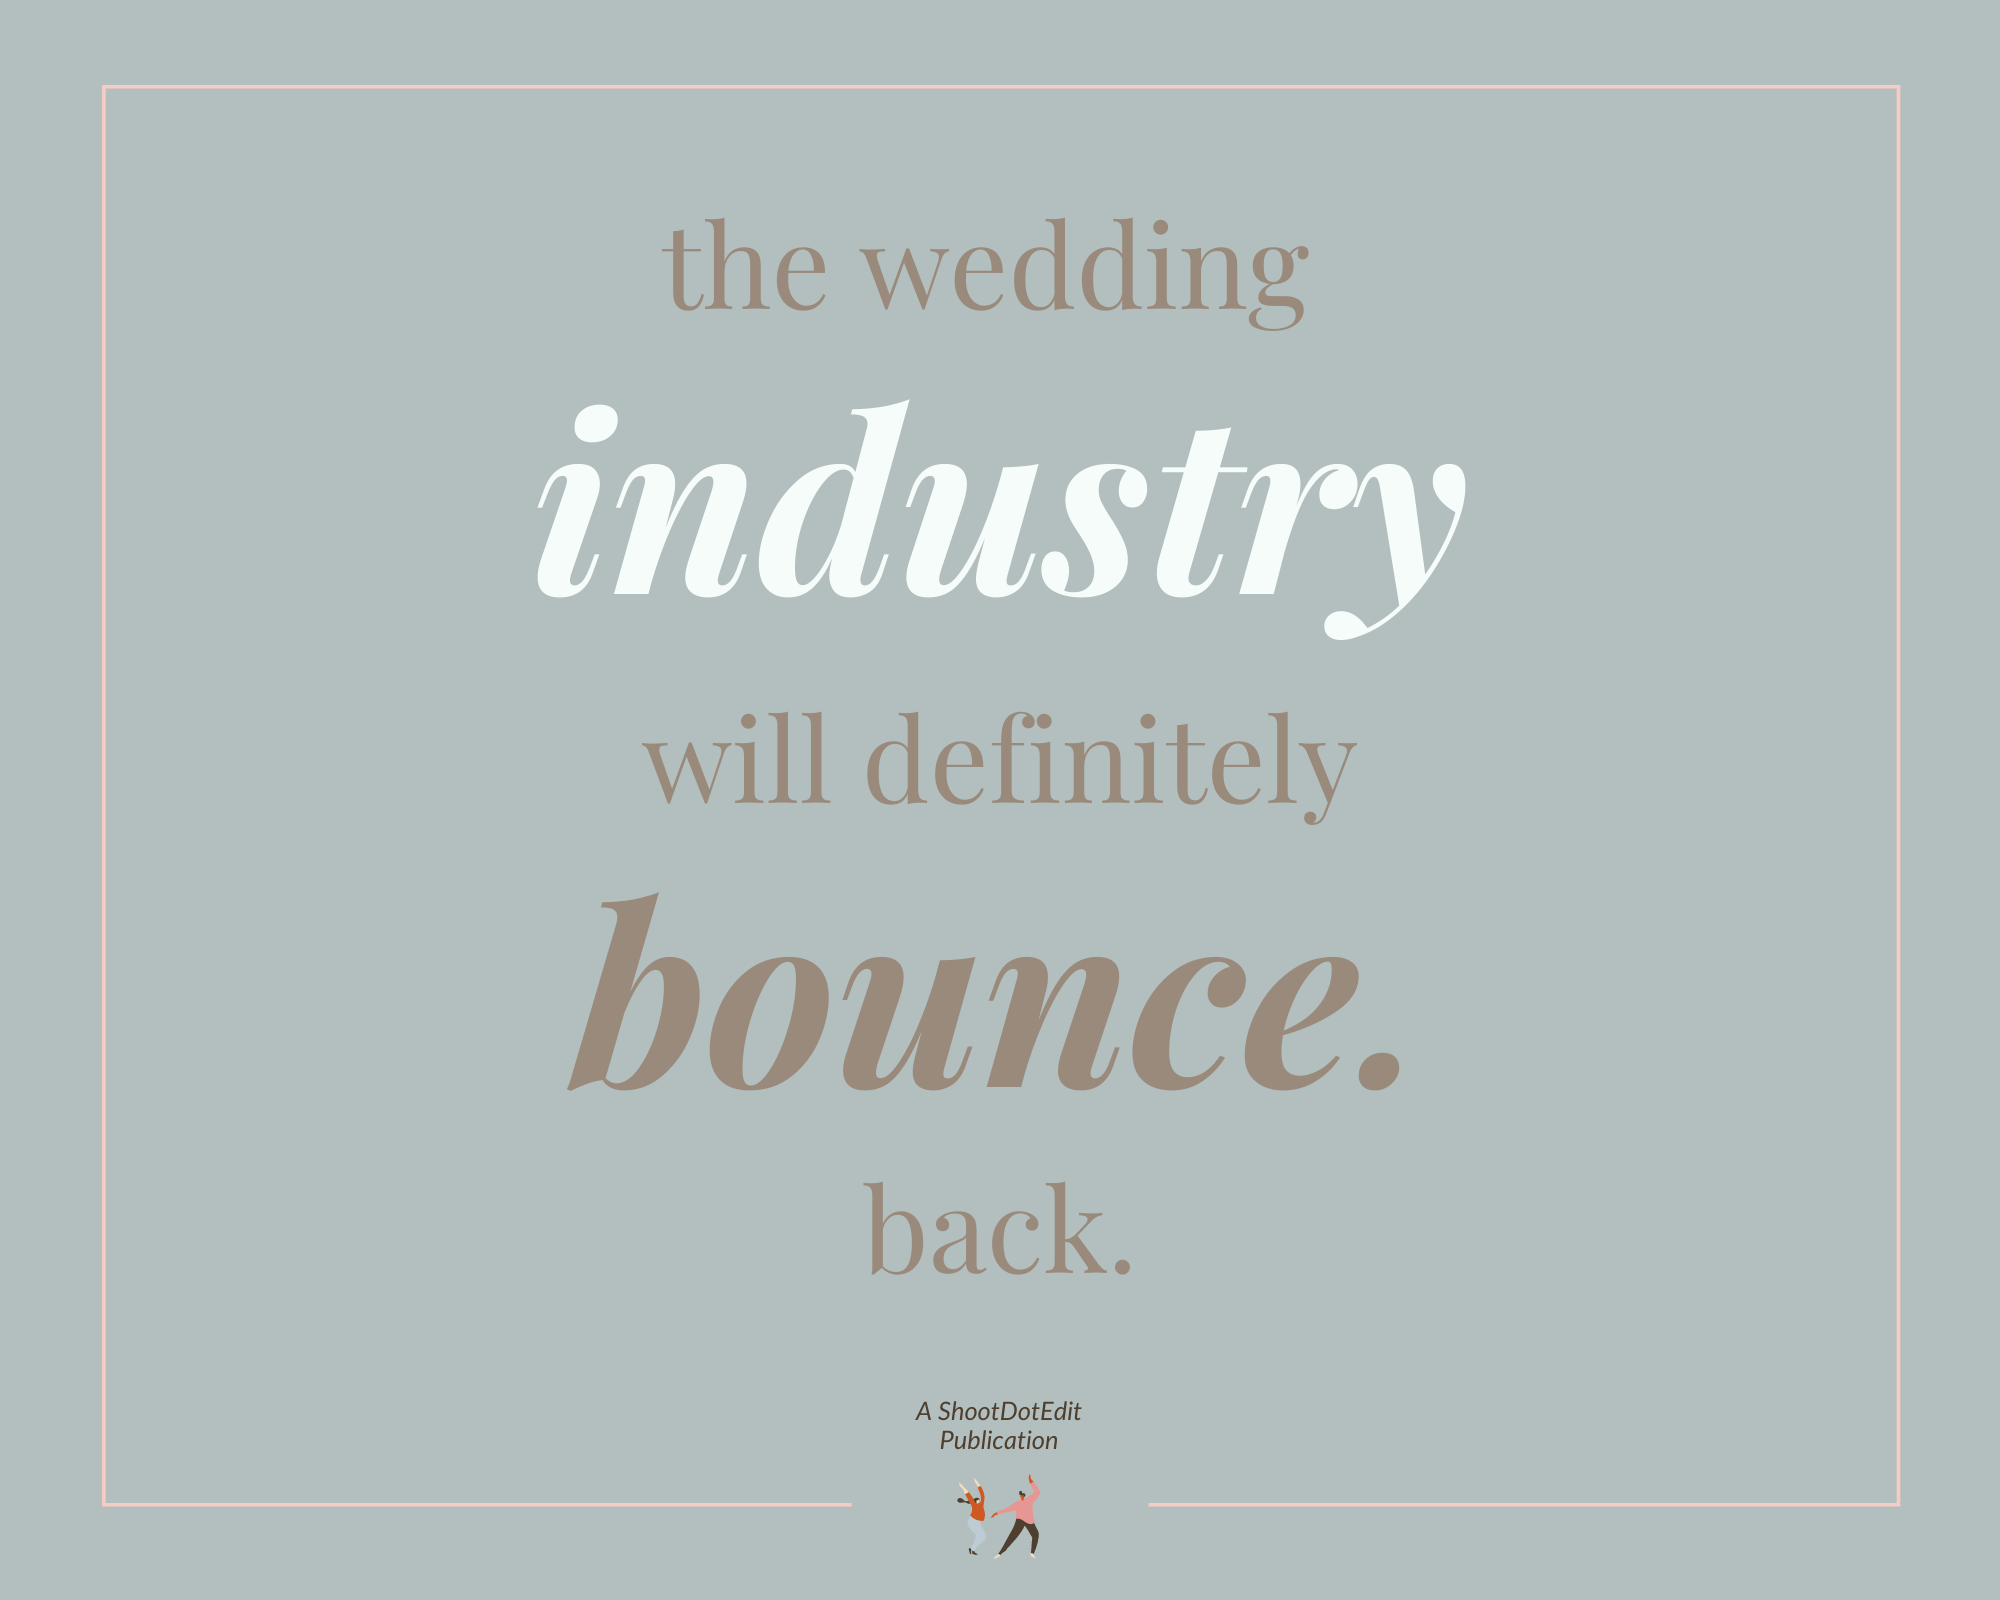 the wedding industry will bounce back